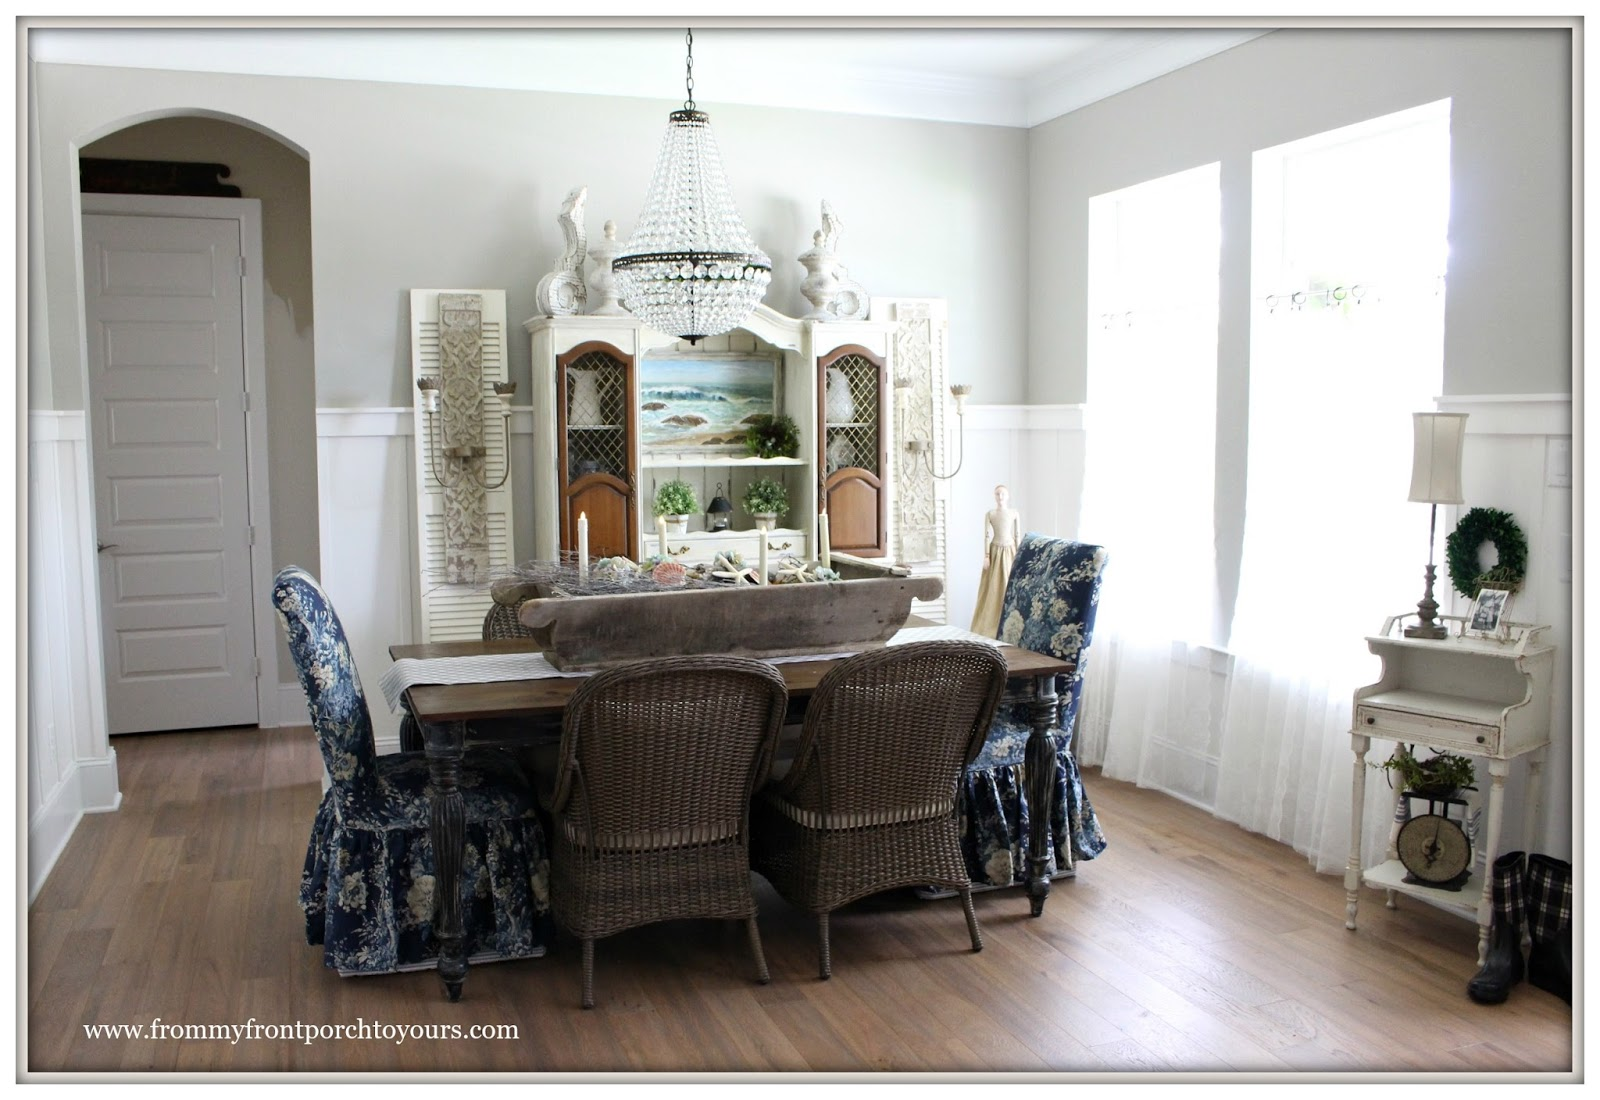 French Country Farmhouse Dining Room Pottery Barn Chandelier From My Front Porch To Yours